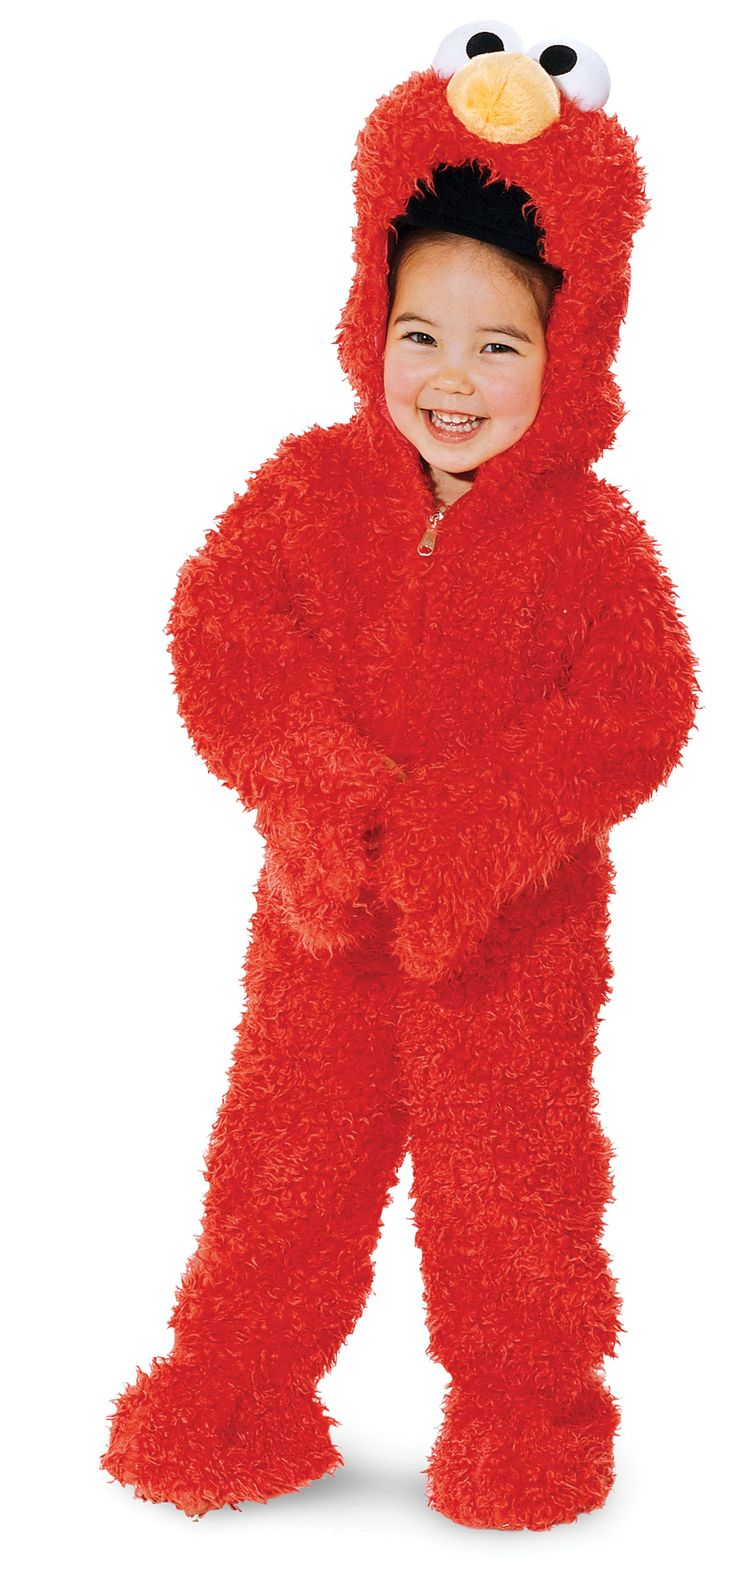 Elmo Plush Deluxe Toddler Costume, 12238